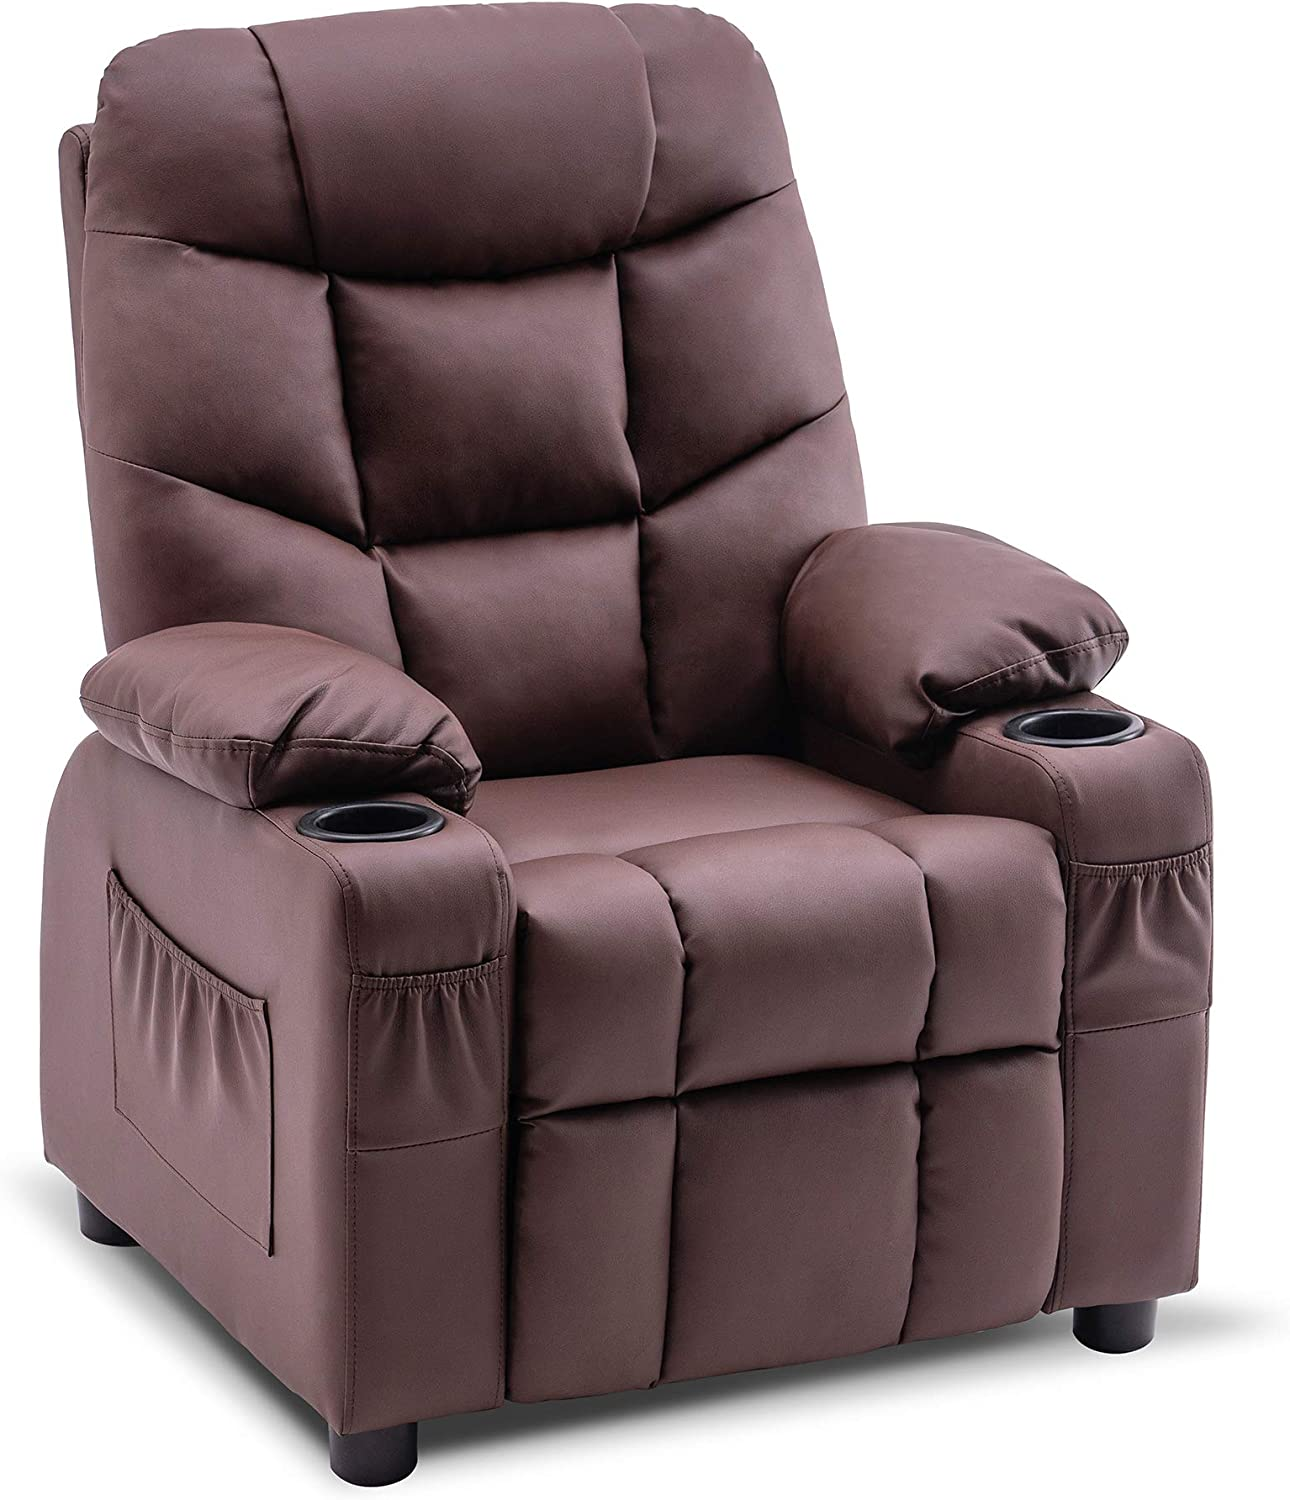 Mcombo Big Kids Recliner Chair with Philadelphia Mall Cup National products Gir and Boys for Holders